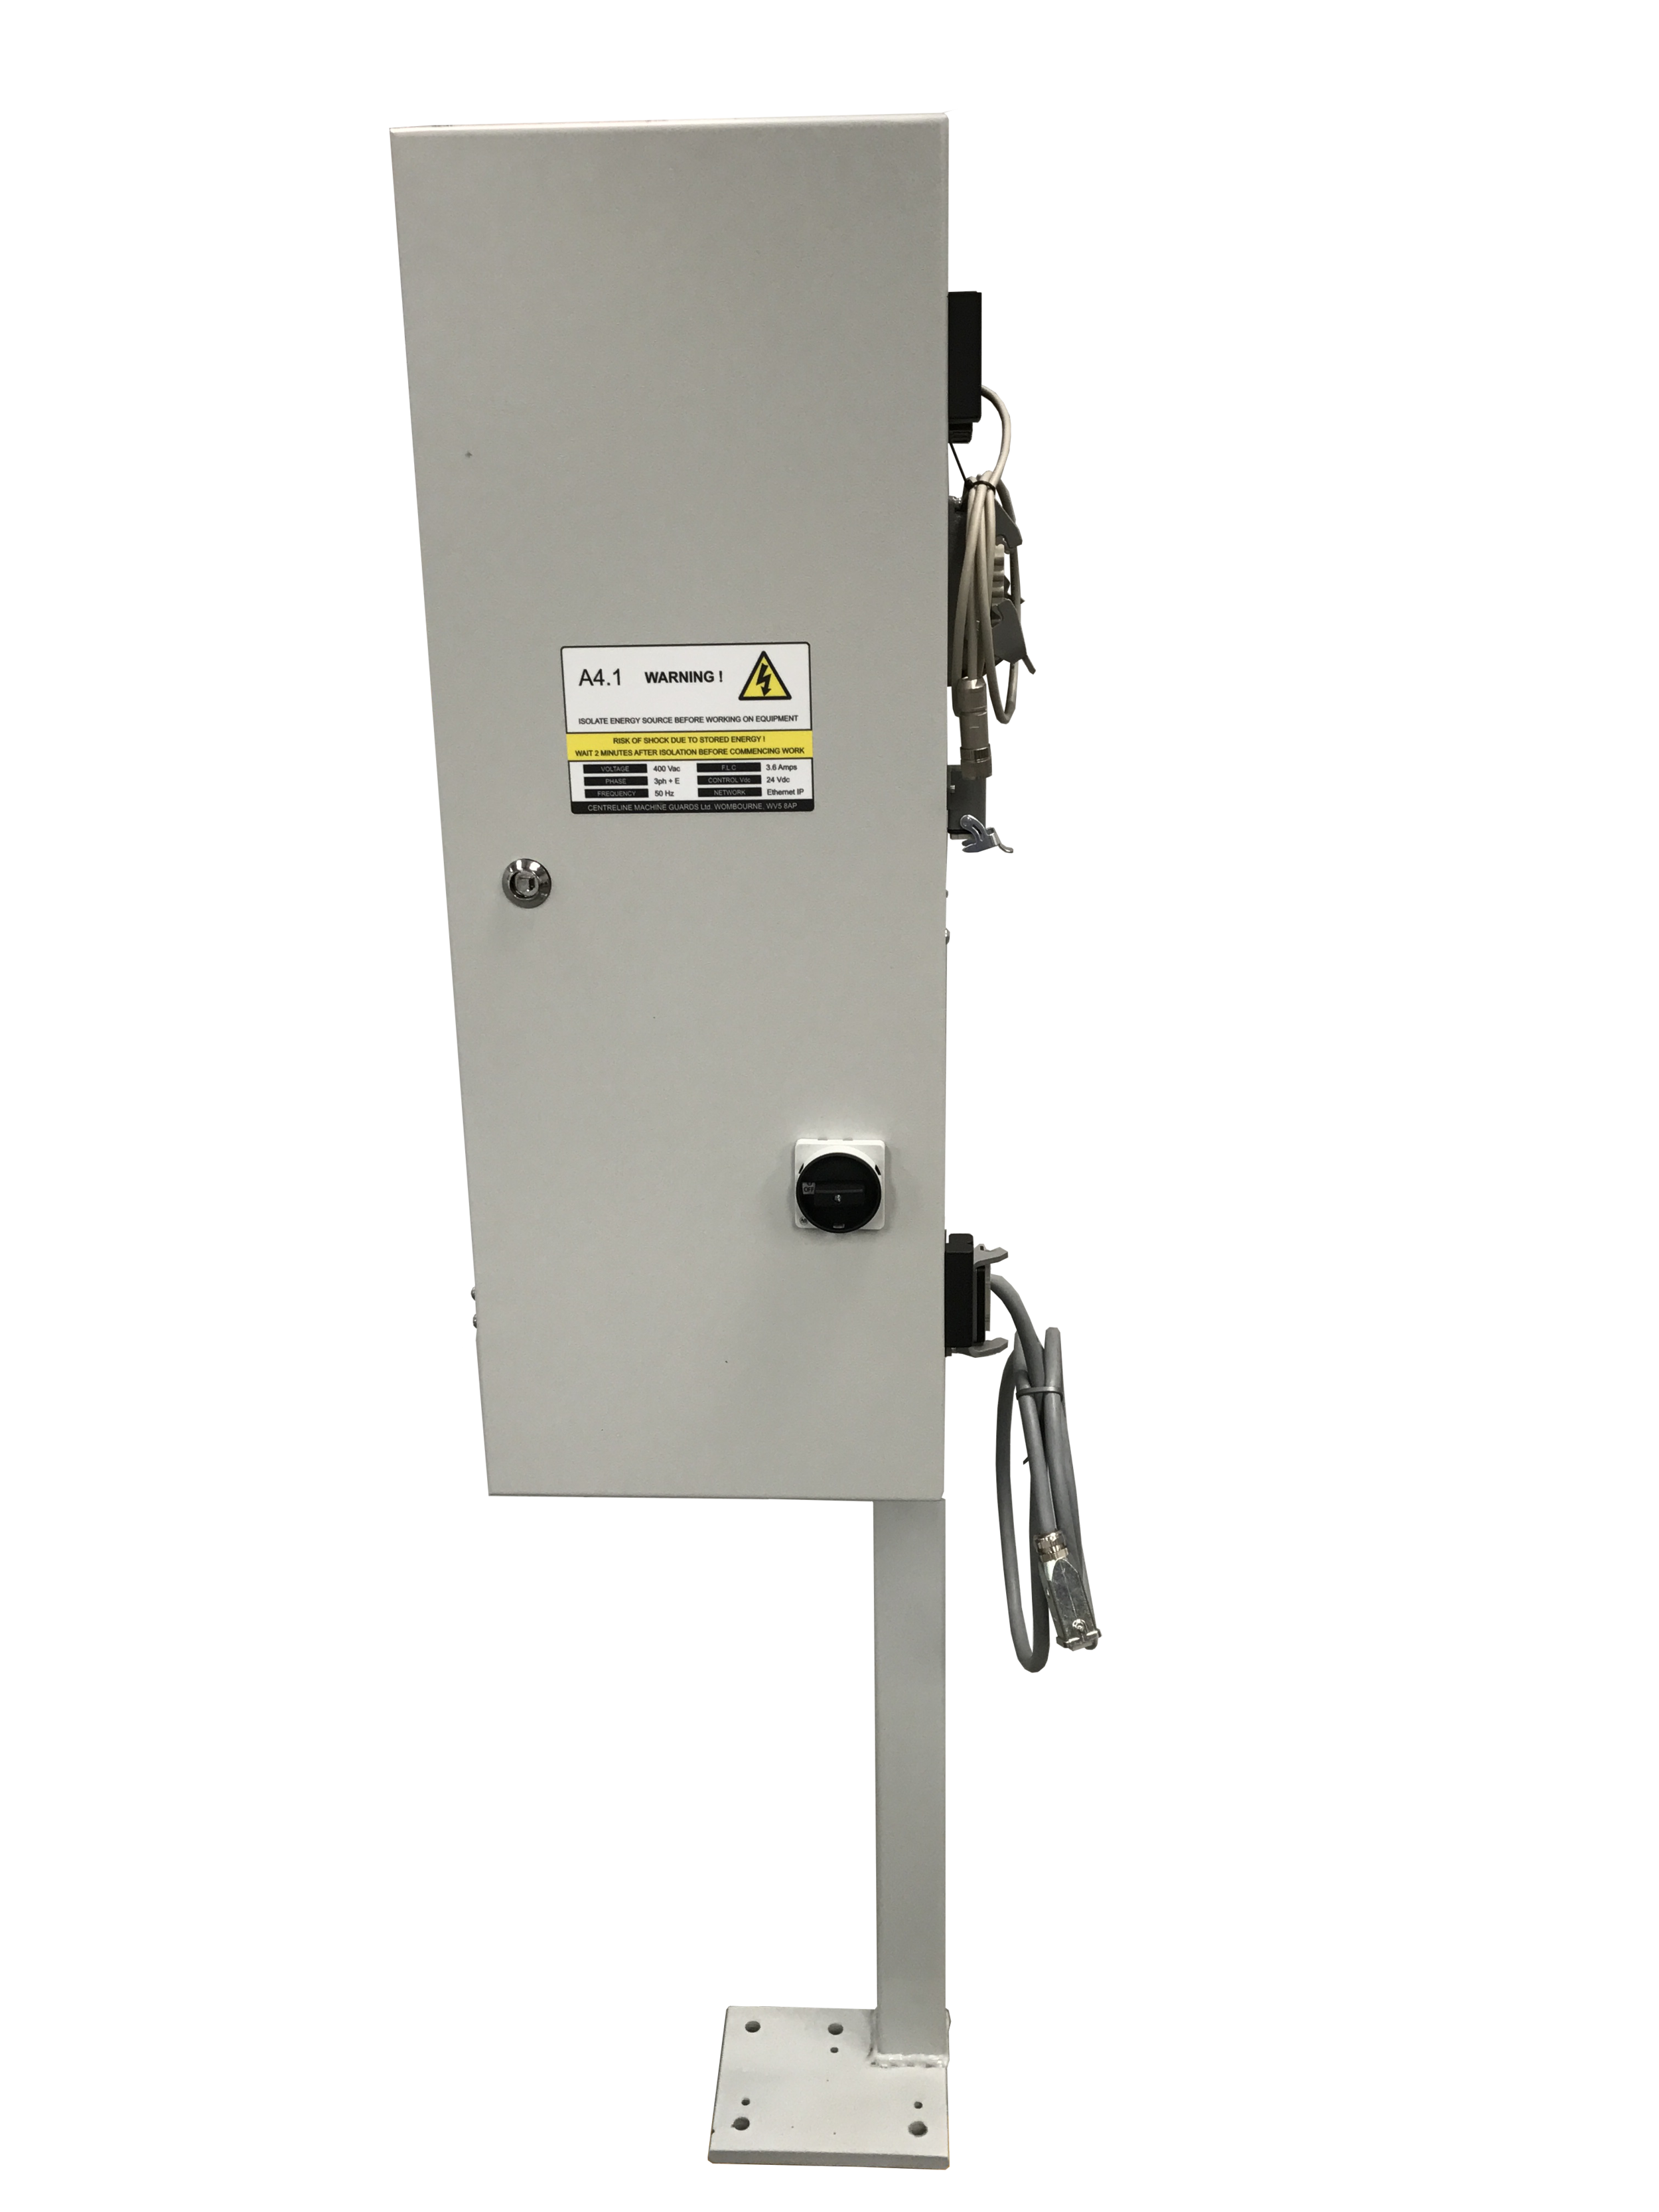 Door comes with our own integrated control box developed to suite the applications requirements, offering a broad spectrum of integration compatability.